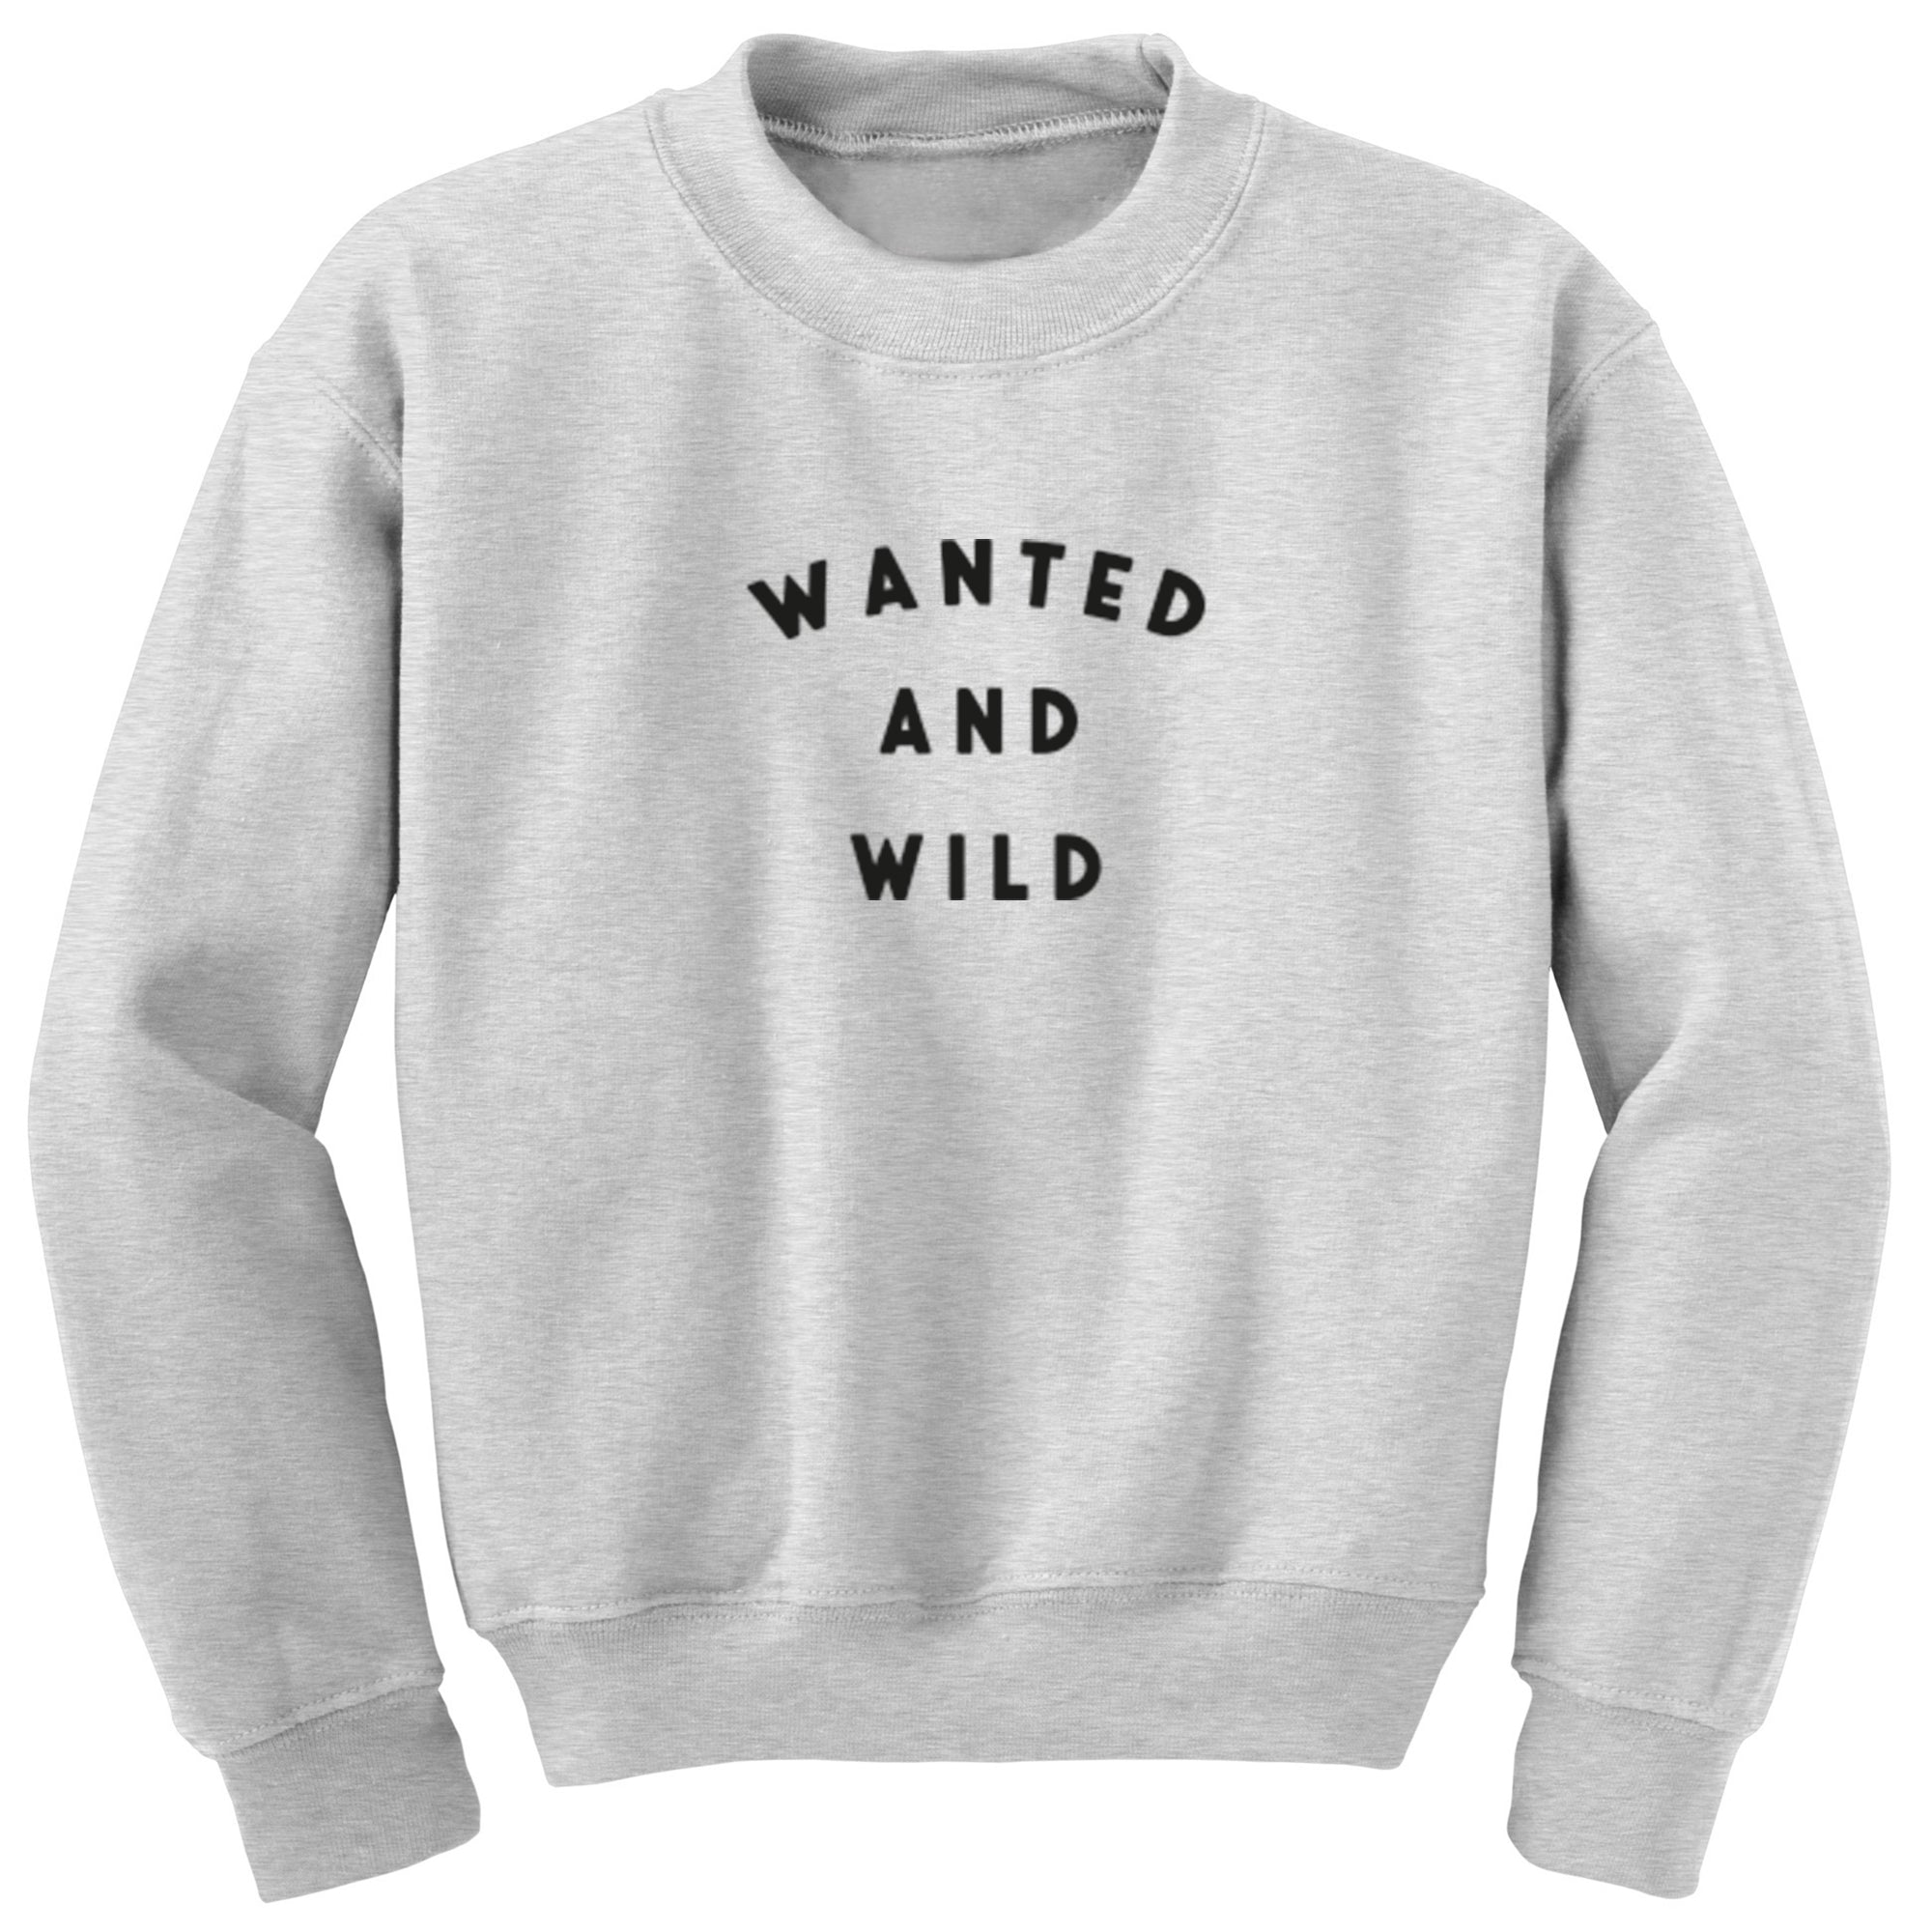 Wanted And Wild Unisex Jumper S0907 - Illustrated Identity Ltd.